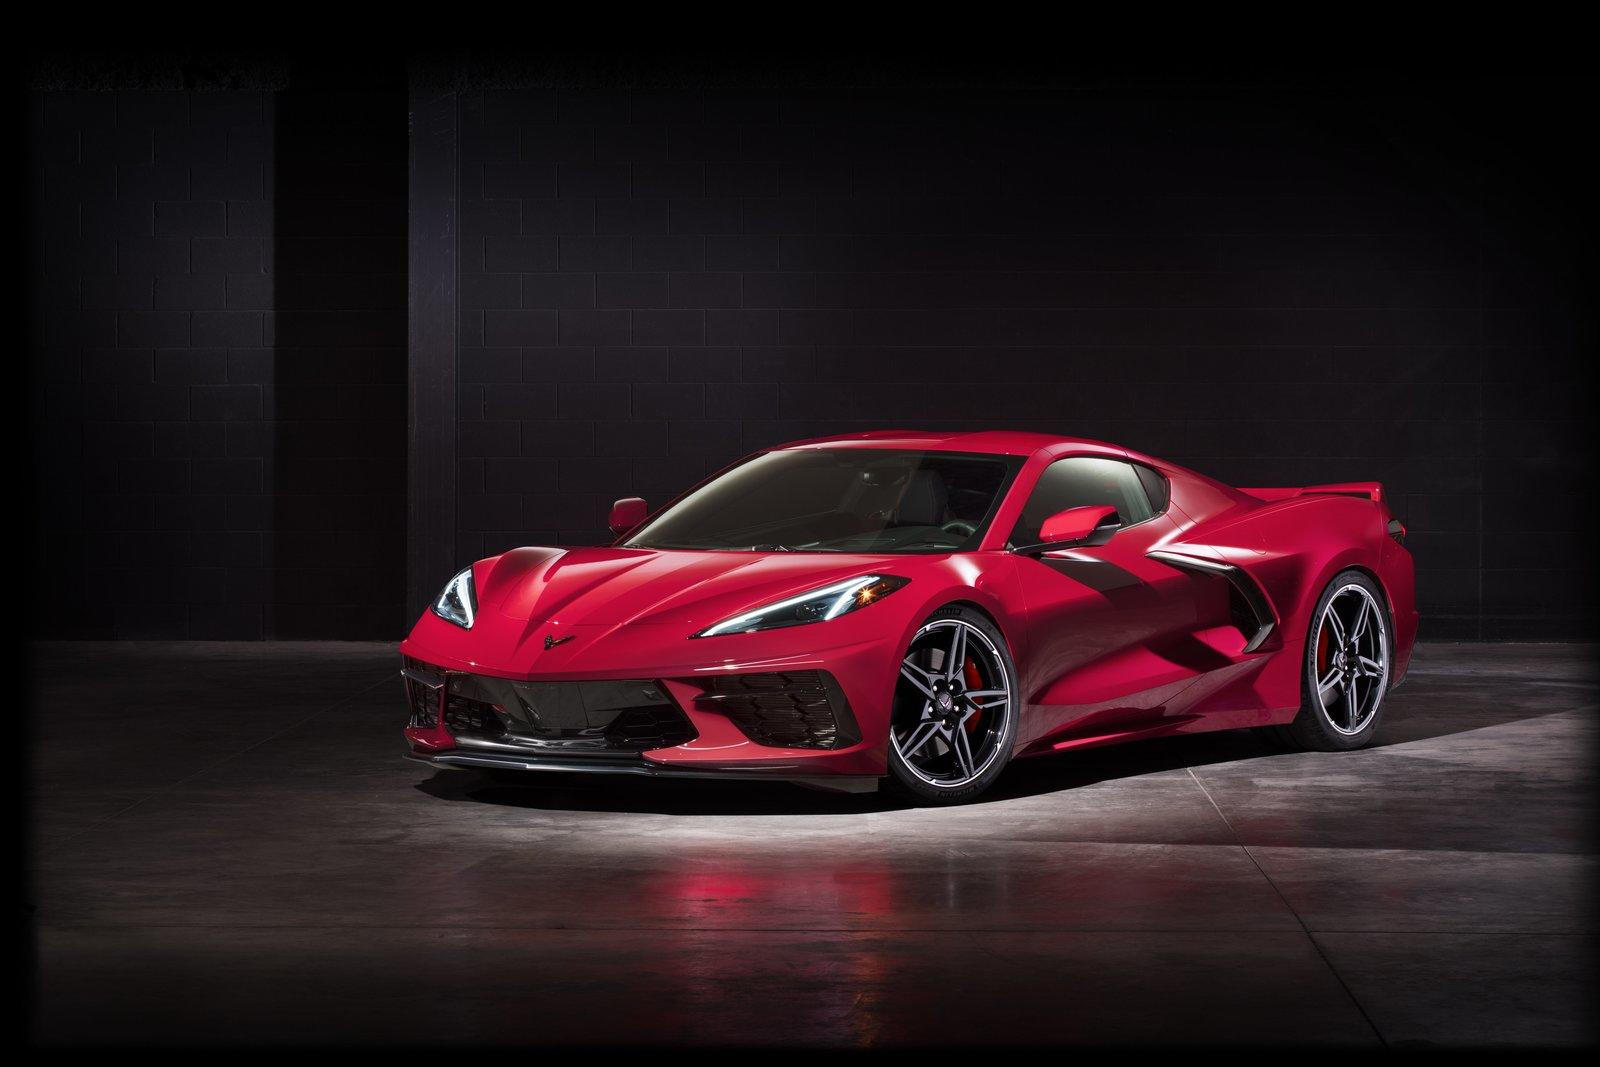 Leaked Specs Reveal 2020 Chevy C8 Corvette Is Quicker Than ...